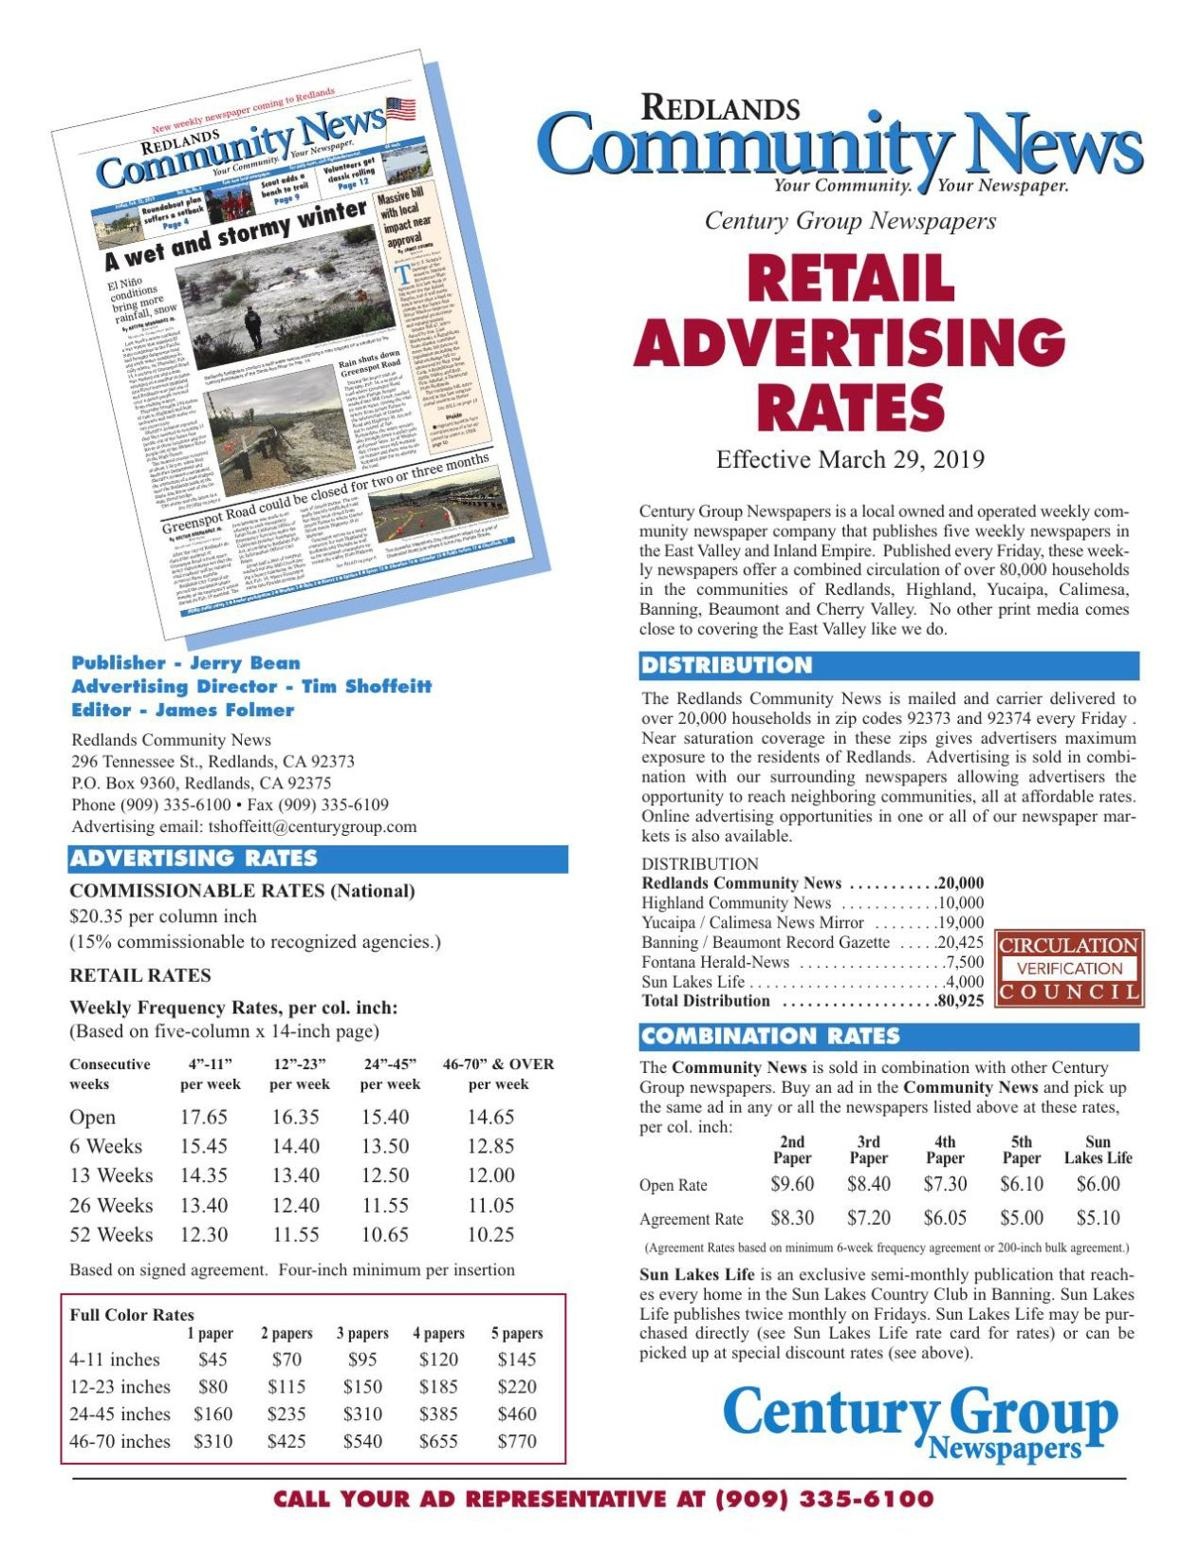 Redlands Community News - Retail Rates